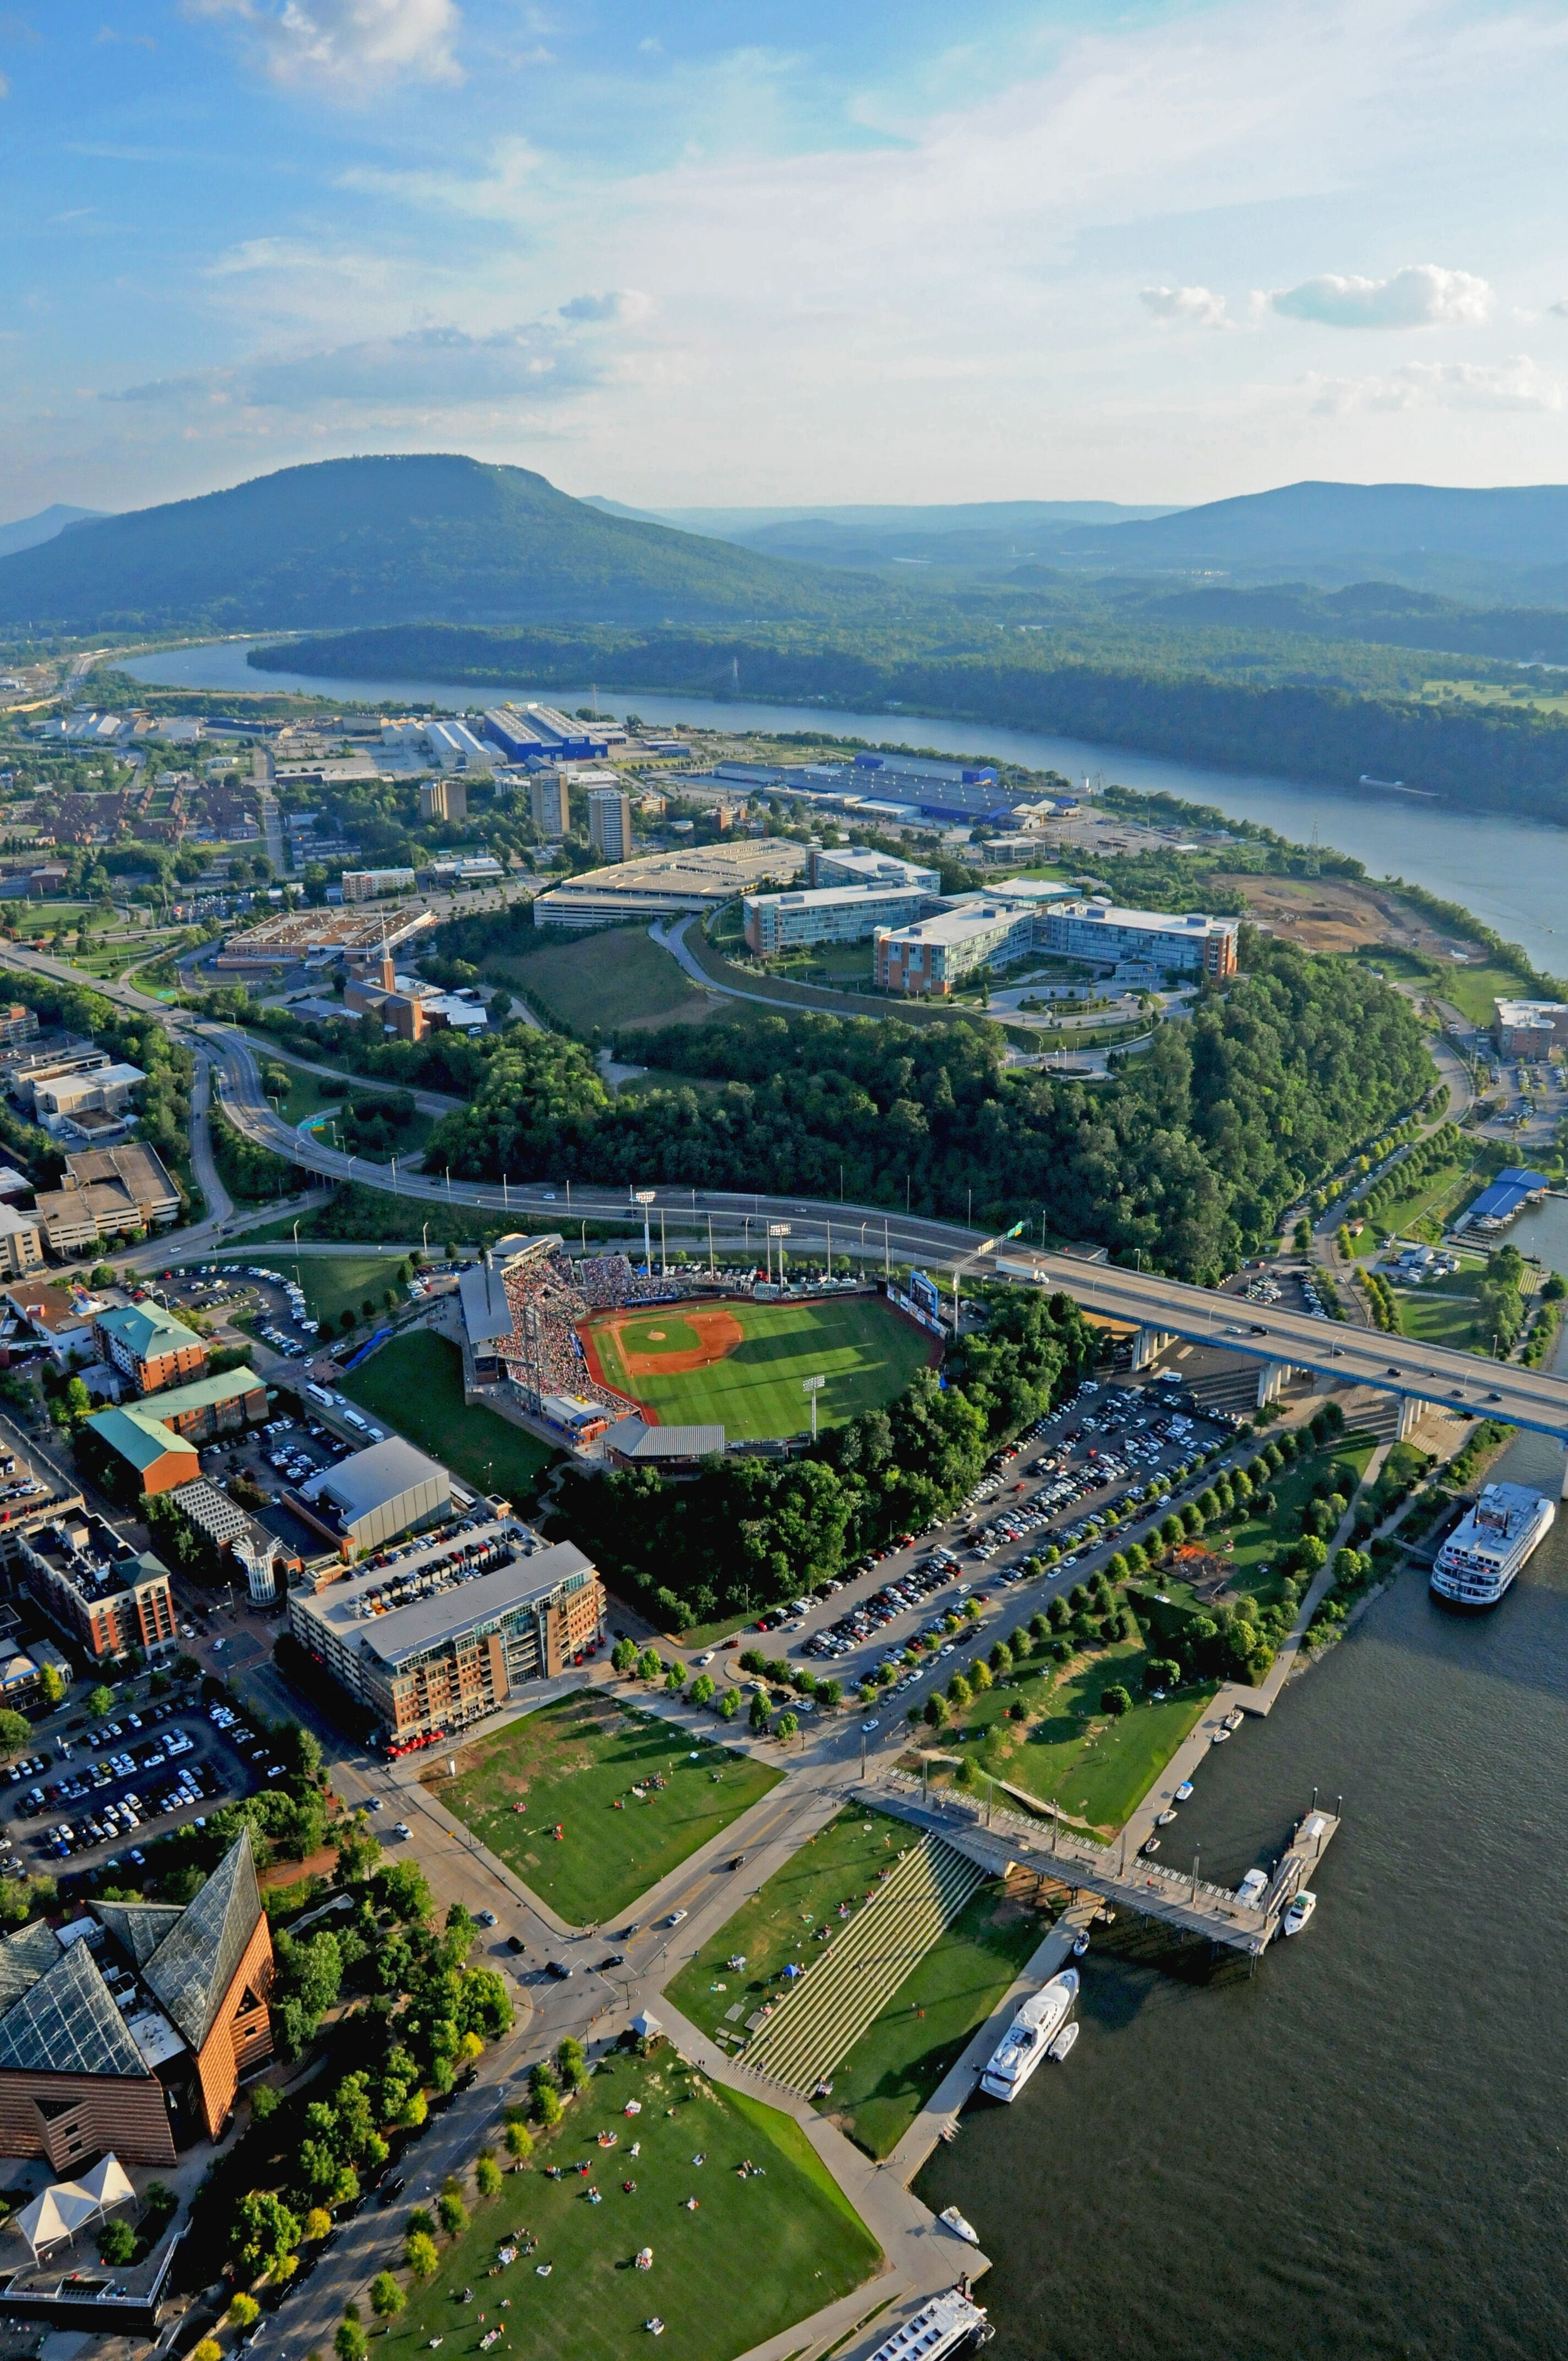 Chattanooga Lookouts Stadium and Lookout Mountain